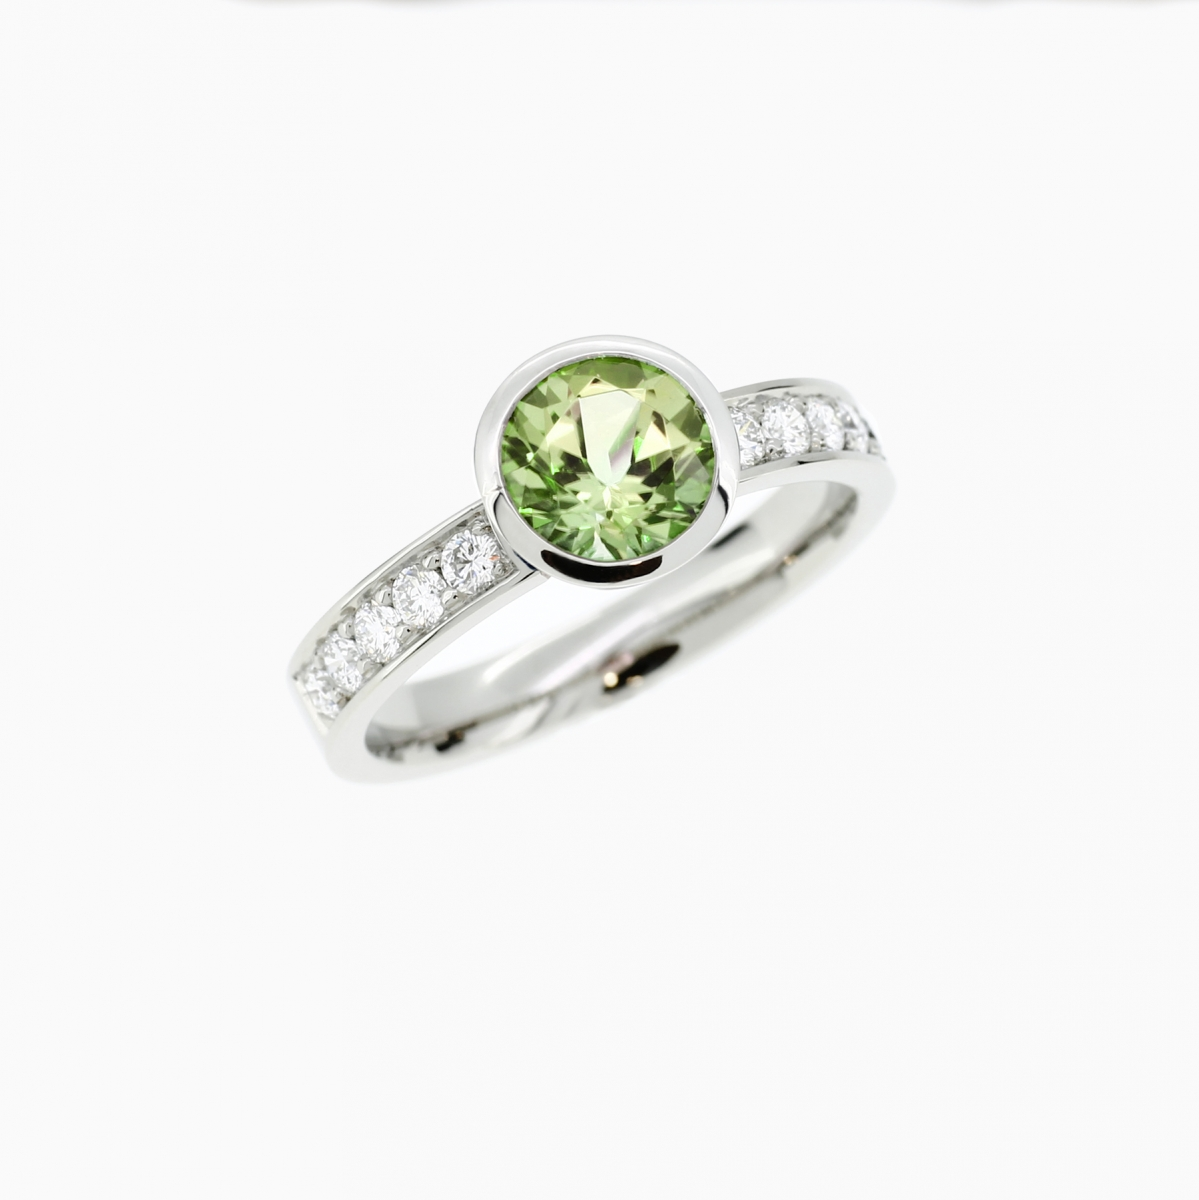 princess ct masters pin caravaggio art platinum wedding peridot diamond engagement platdp rings ring